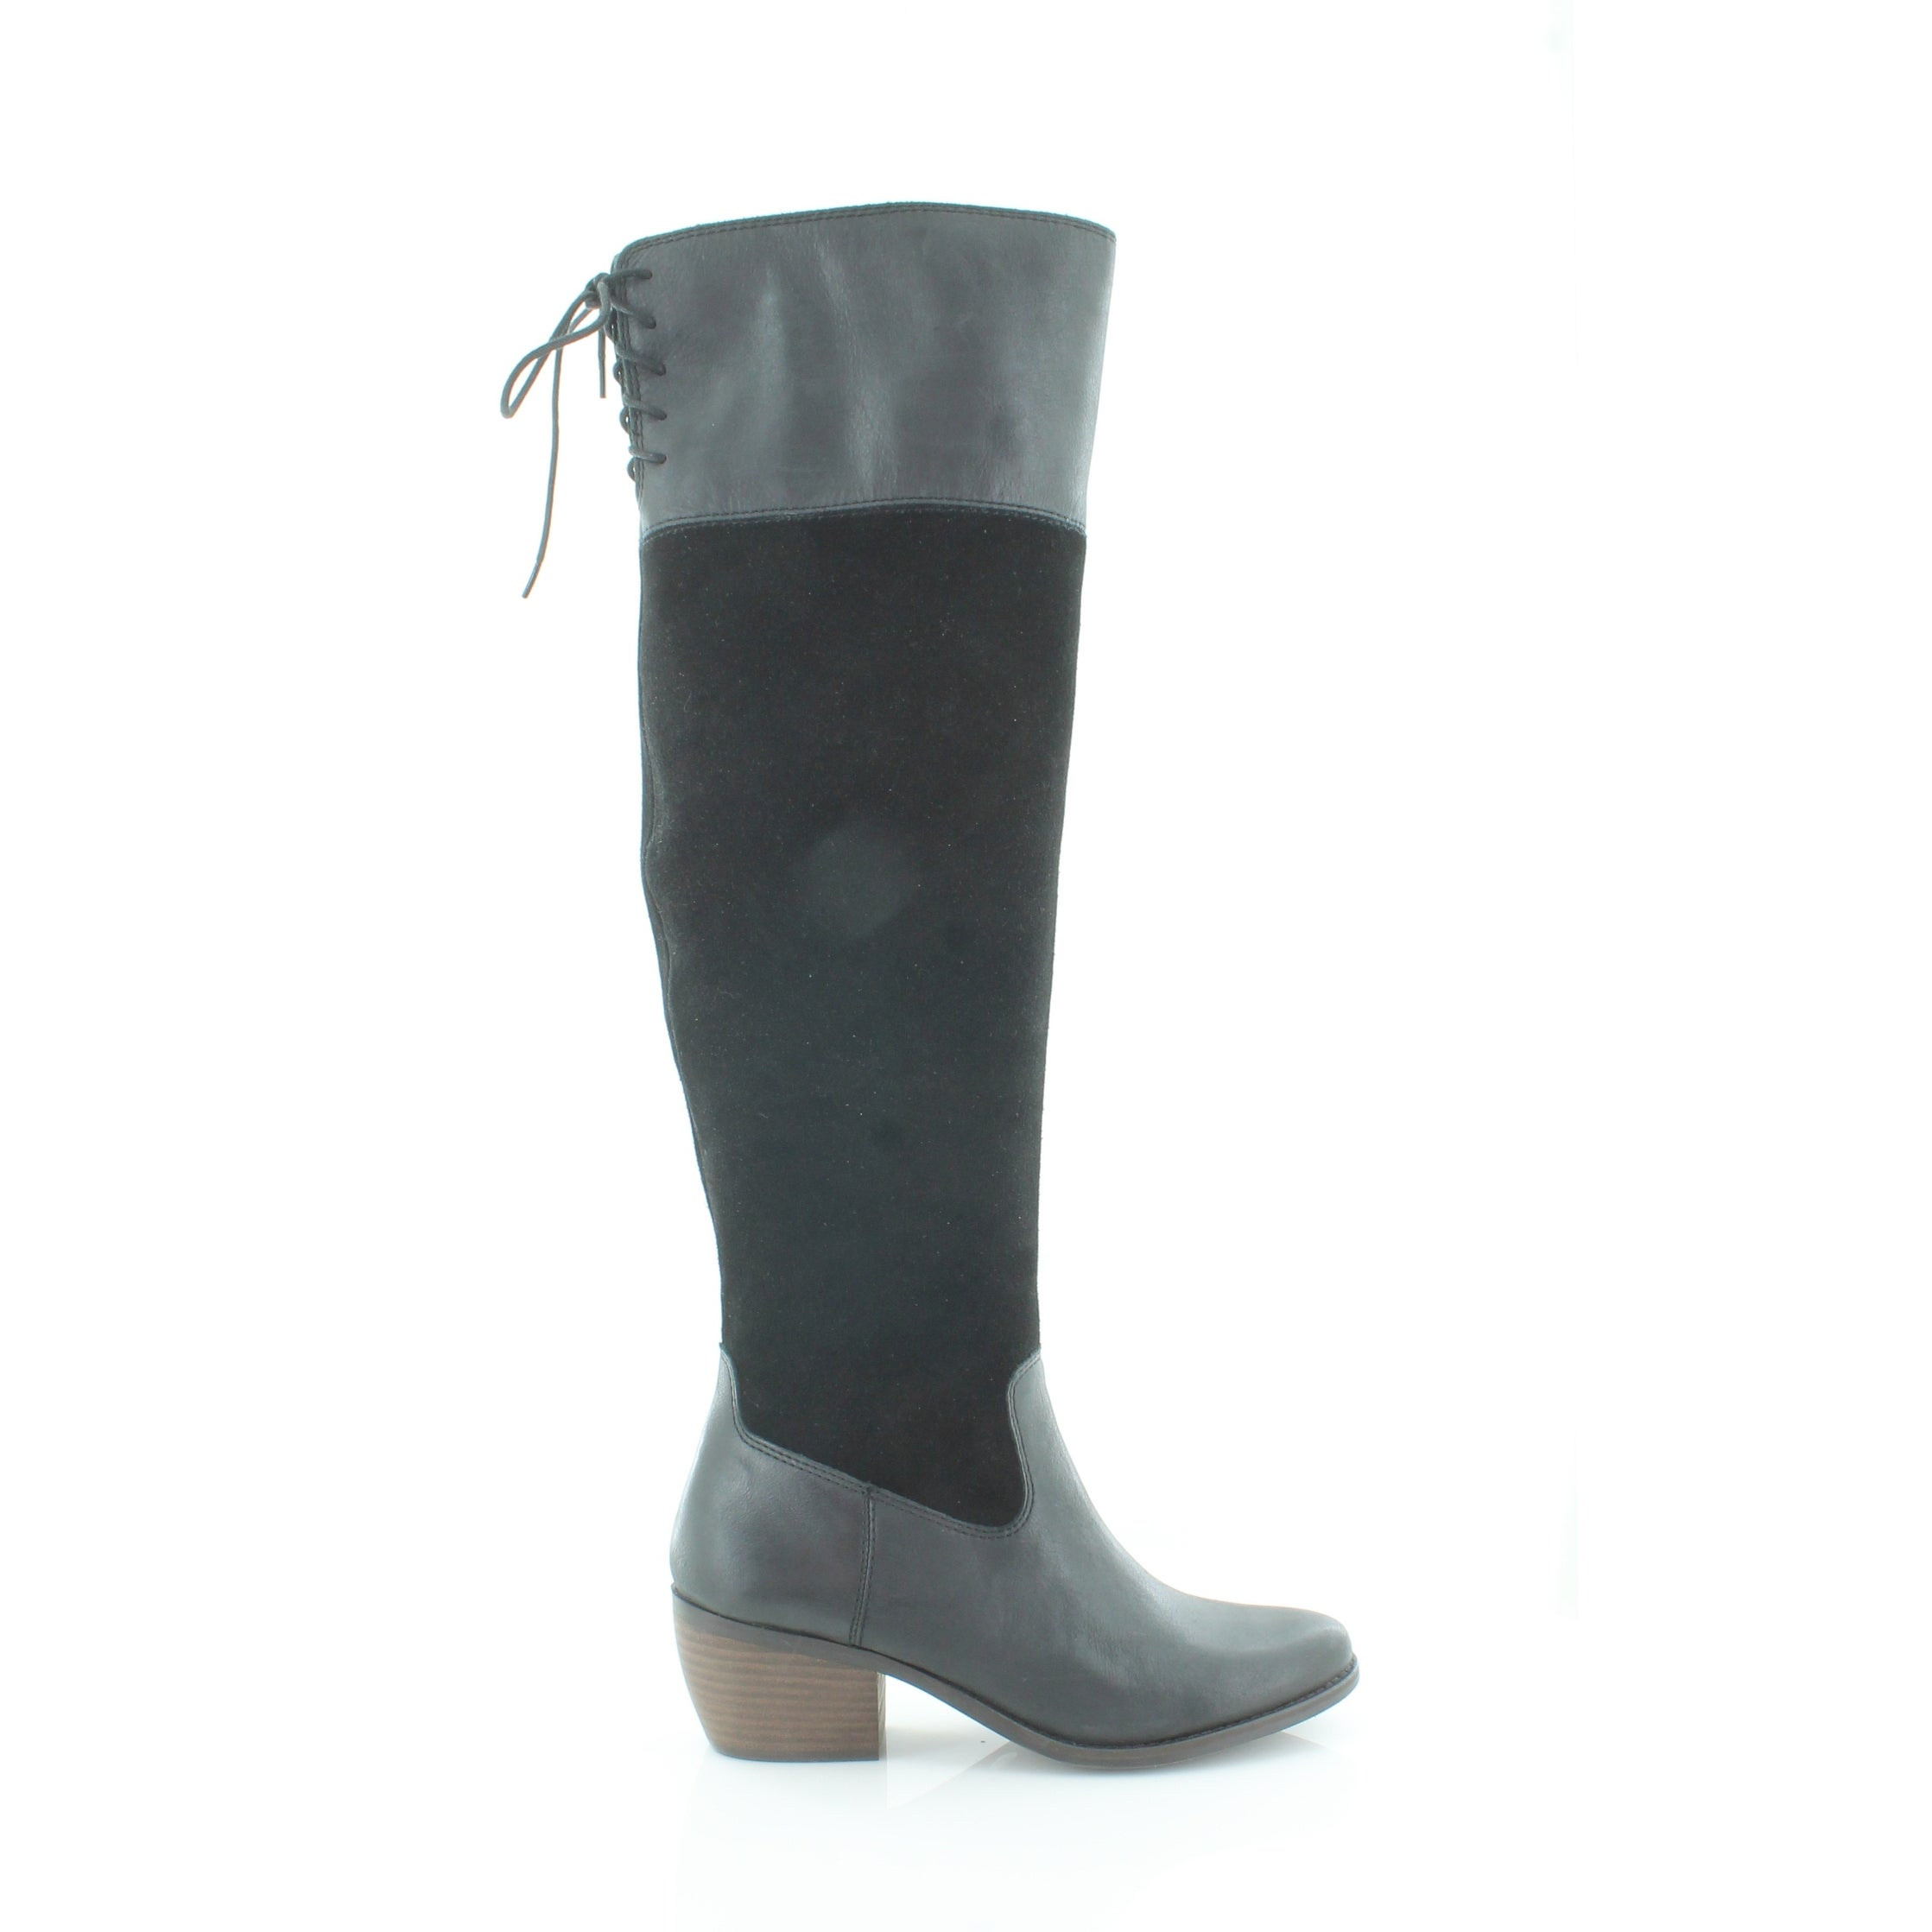 98c4730e125 Shop Lucky Brand Komah Women s Boots Black - Free Shipping Today -  Overstock.com - 25576203